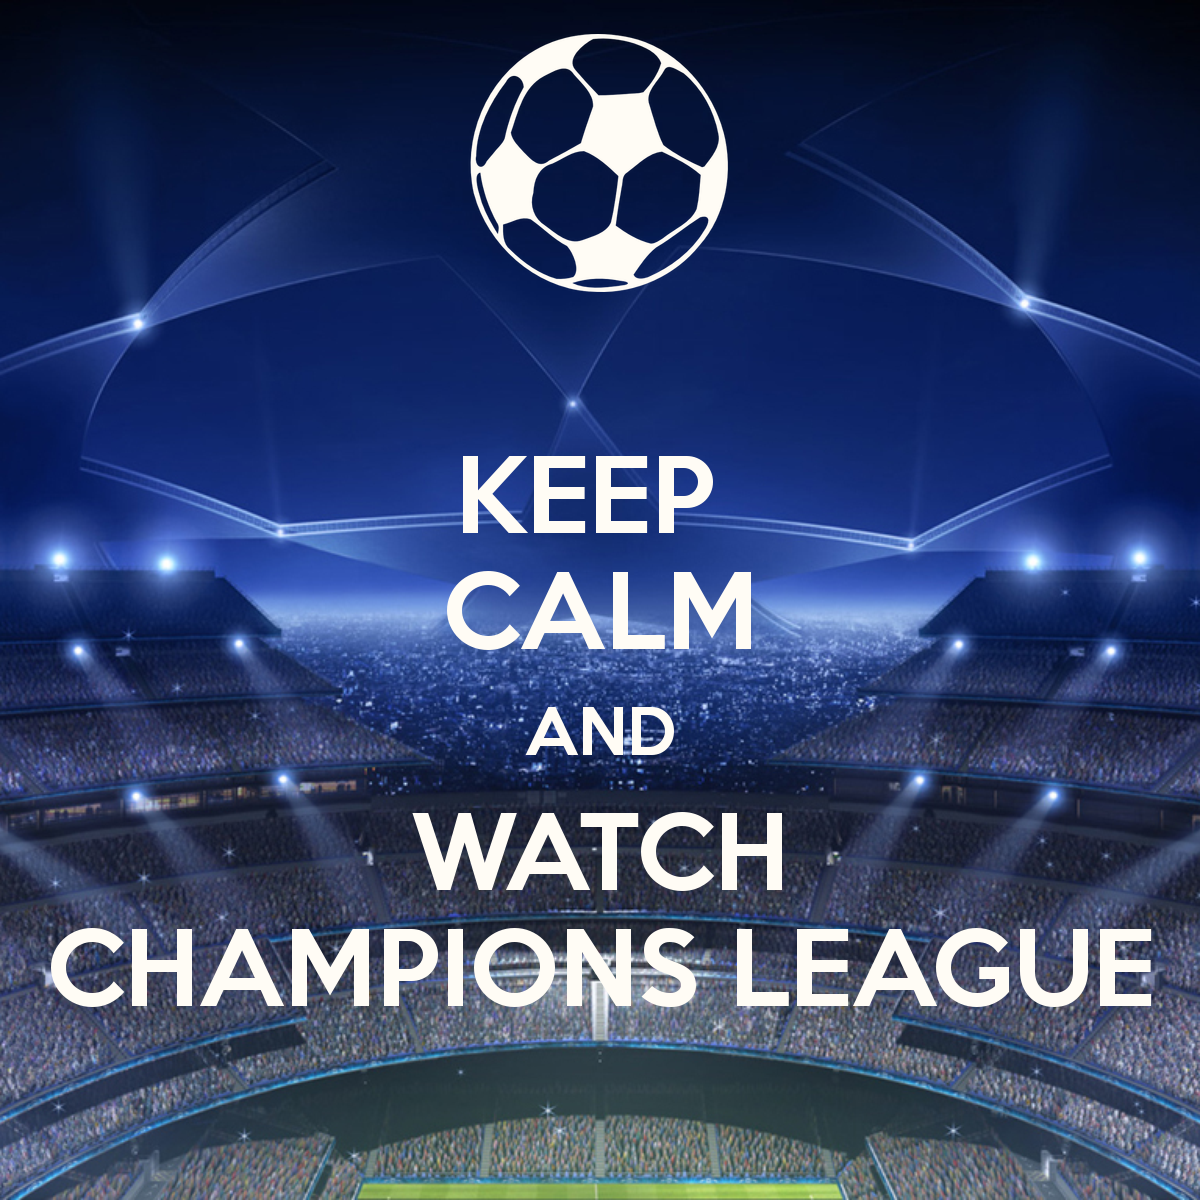 The UEFA CHAMPIONS LEAGUE IS BACK! GET YOUR TICKETS NOW! ENJOY THE GAME! | football | Champions ...